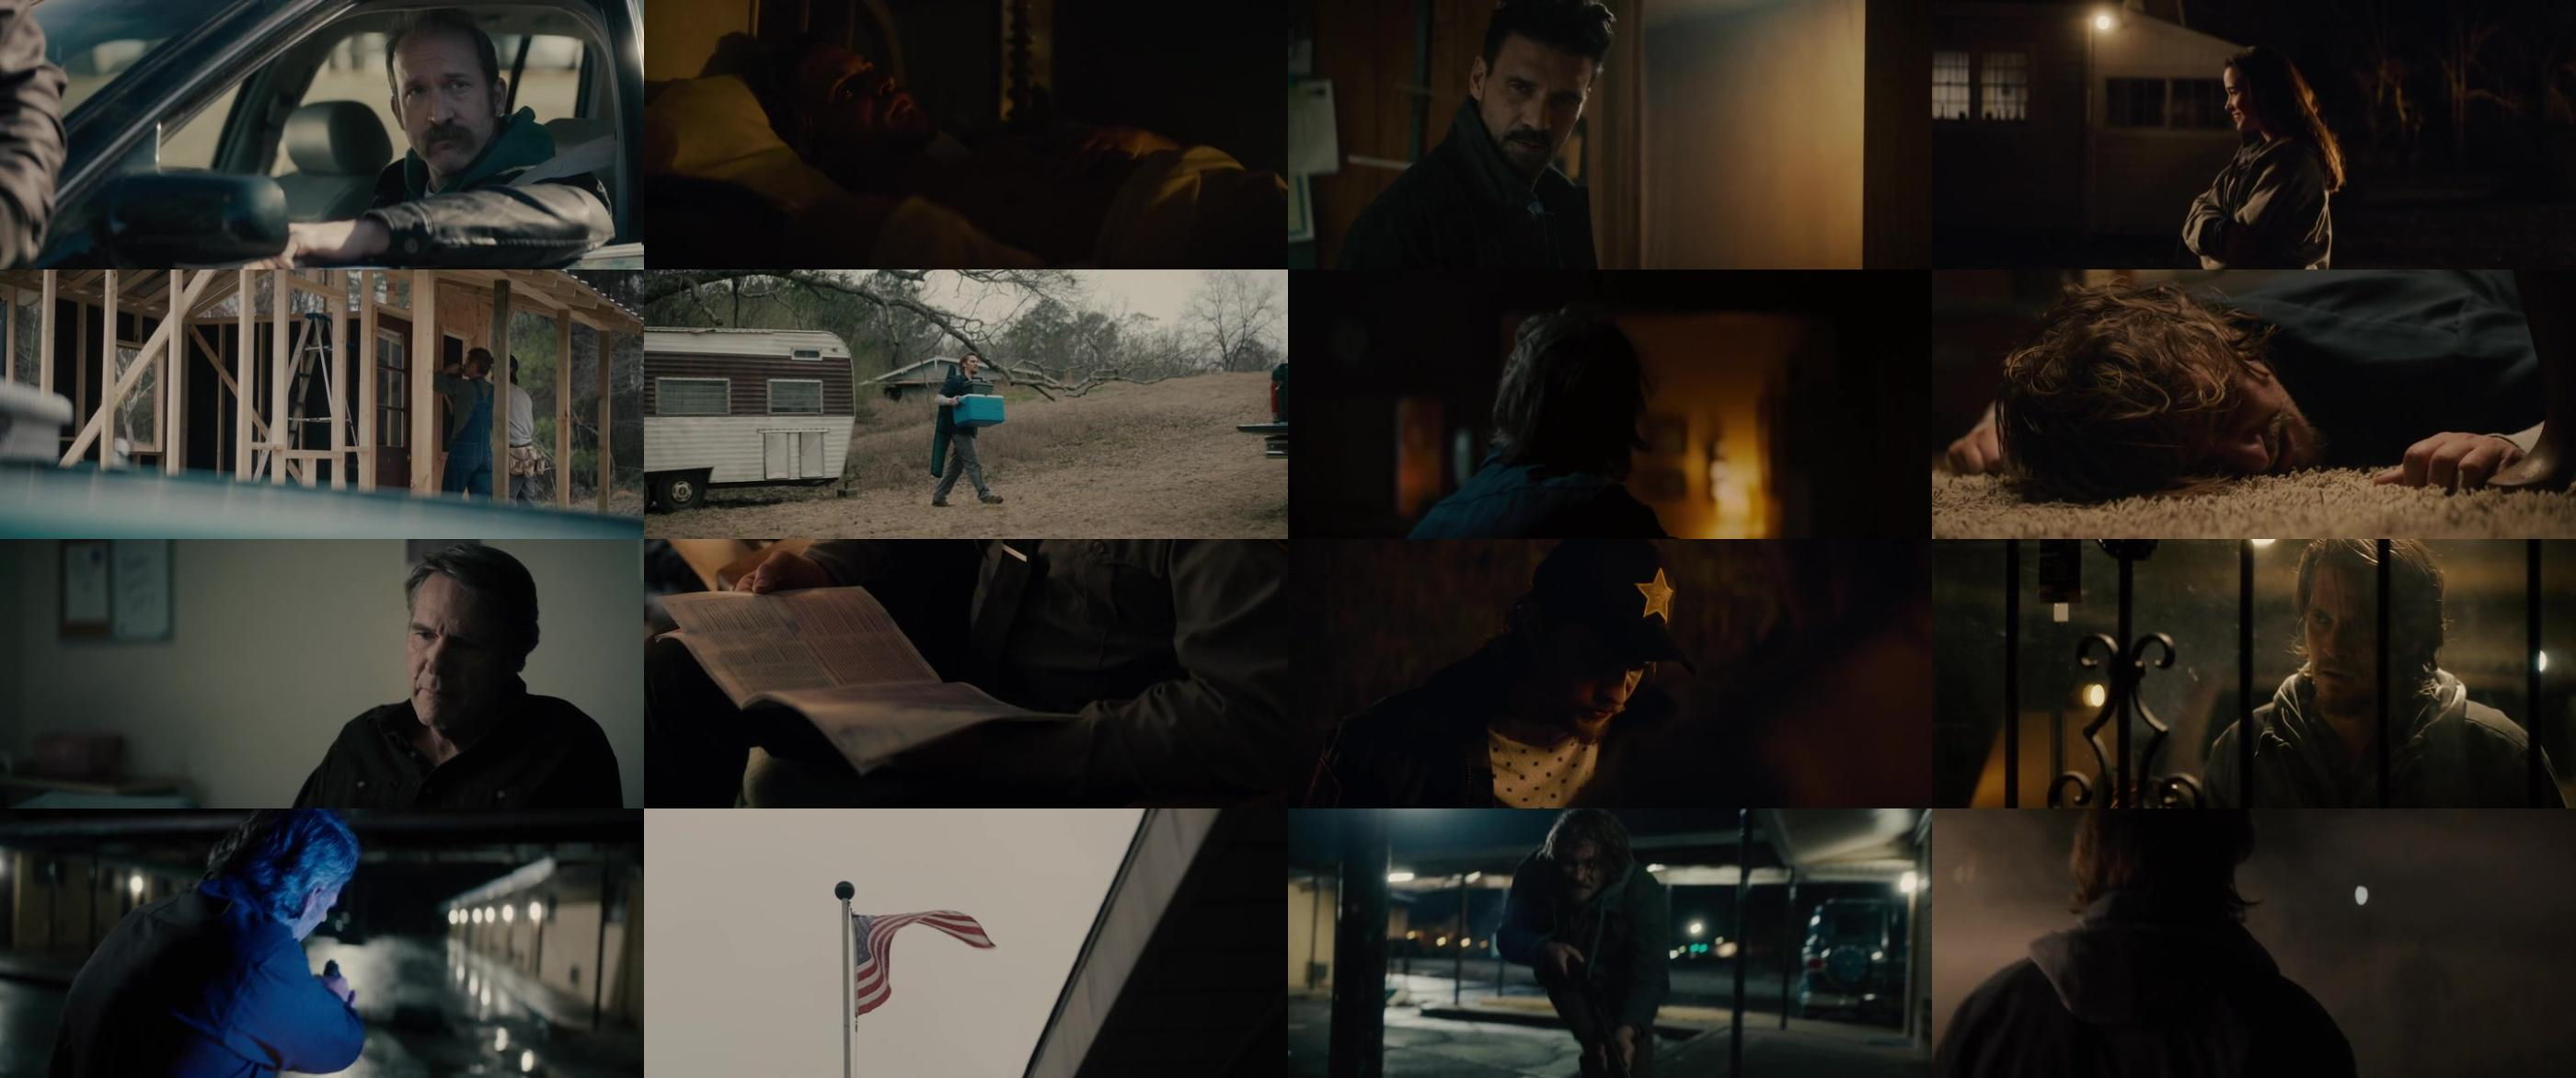 Into the Ashes 2019 BDRip x264 ROVERS